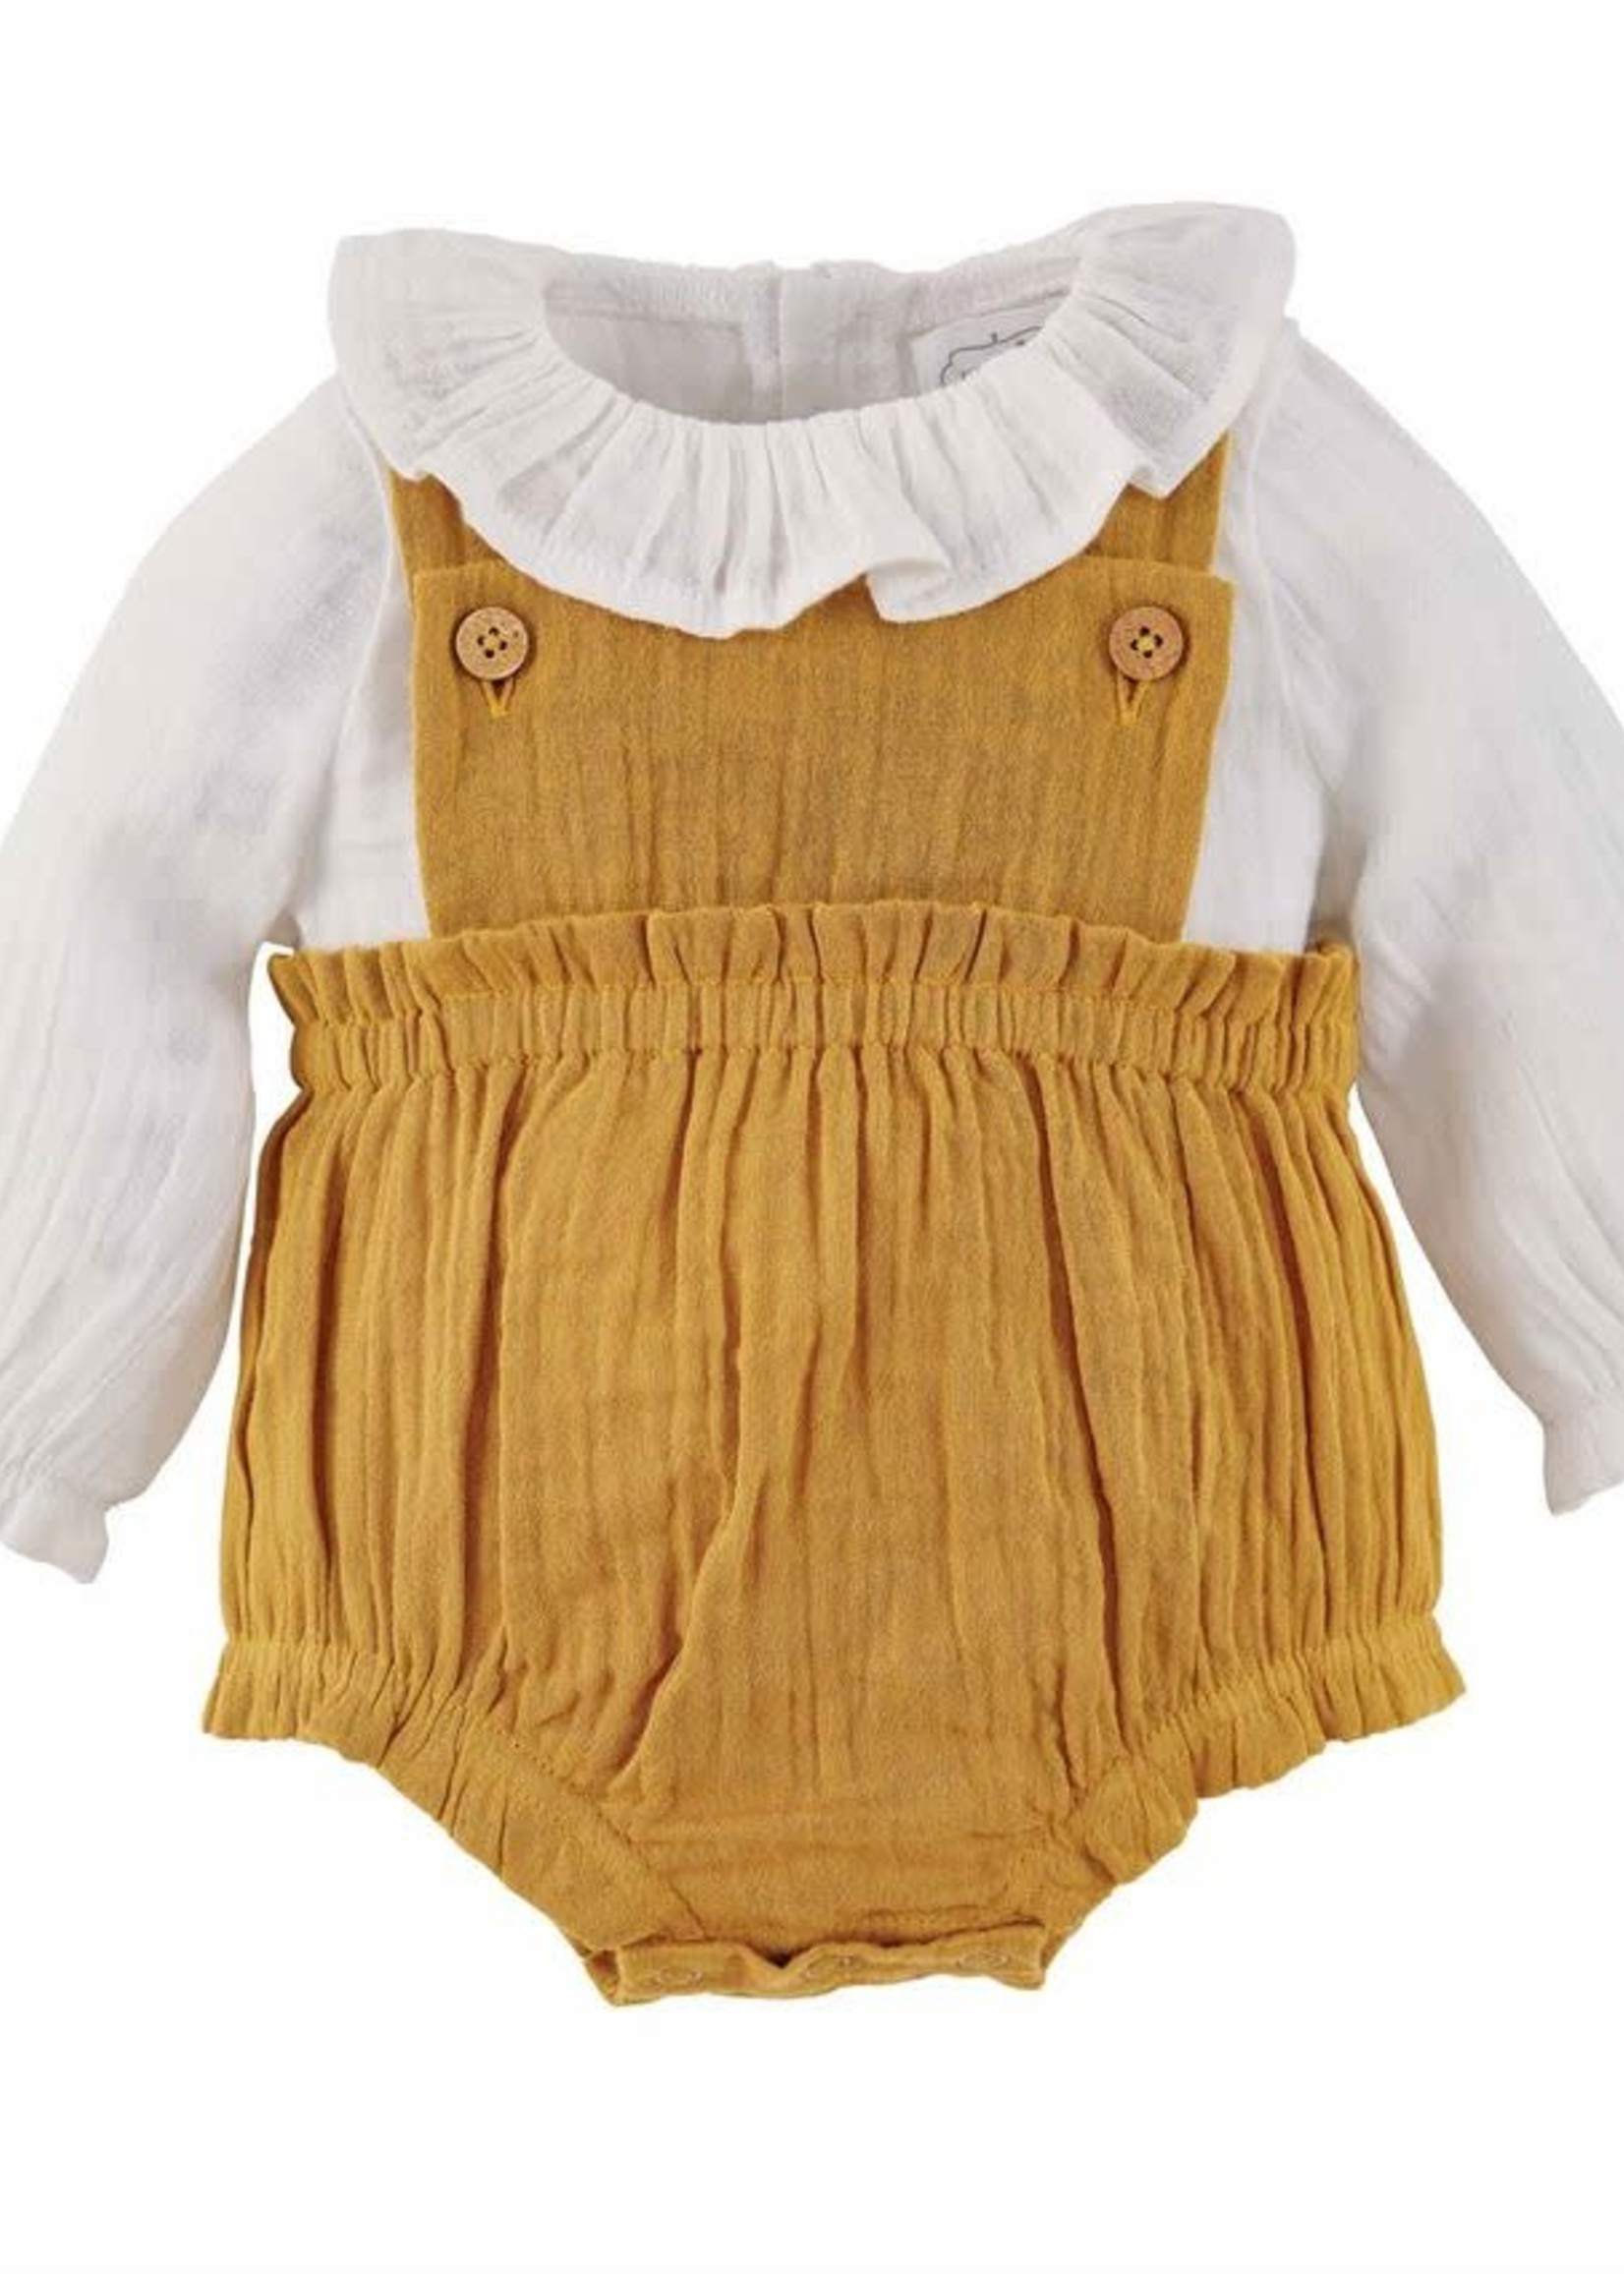 Mud Pie Fall Overall Set 6-9 months